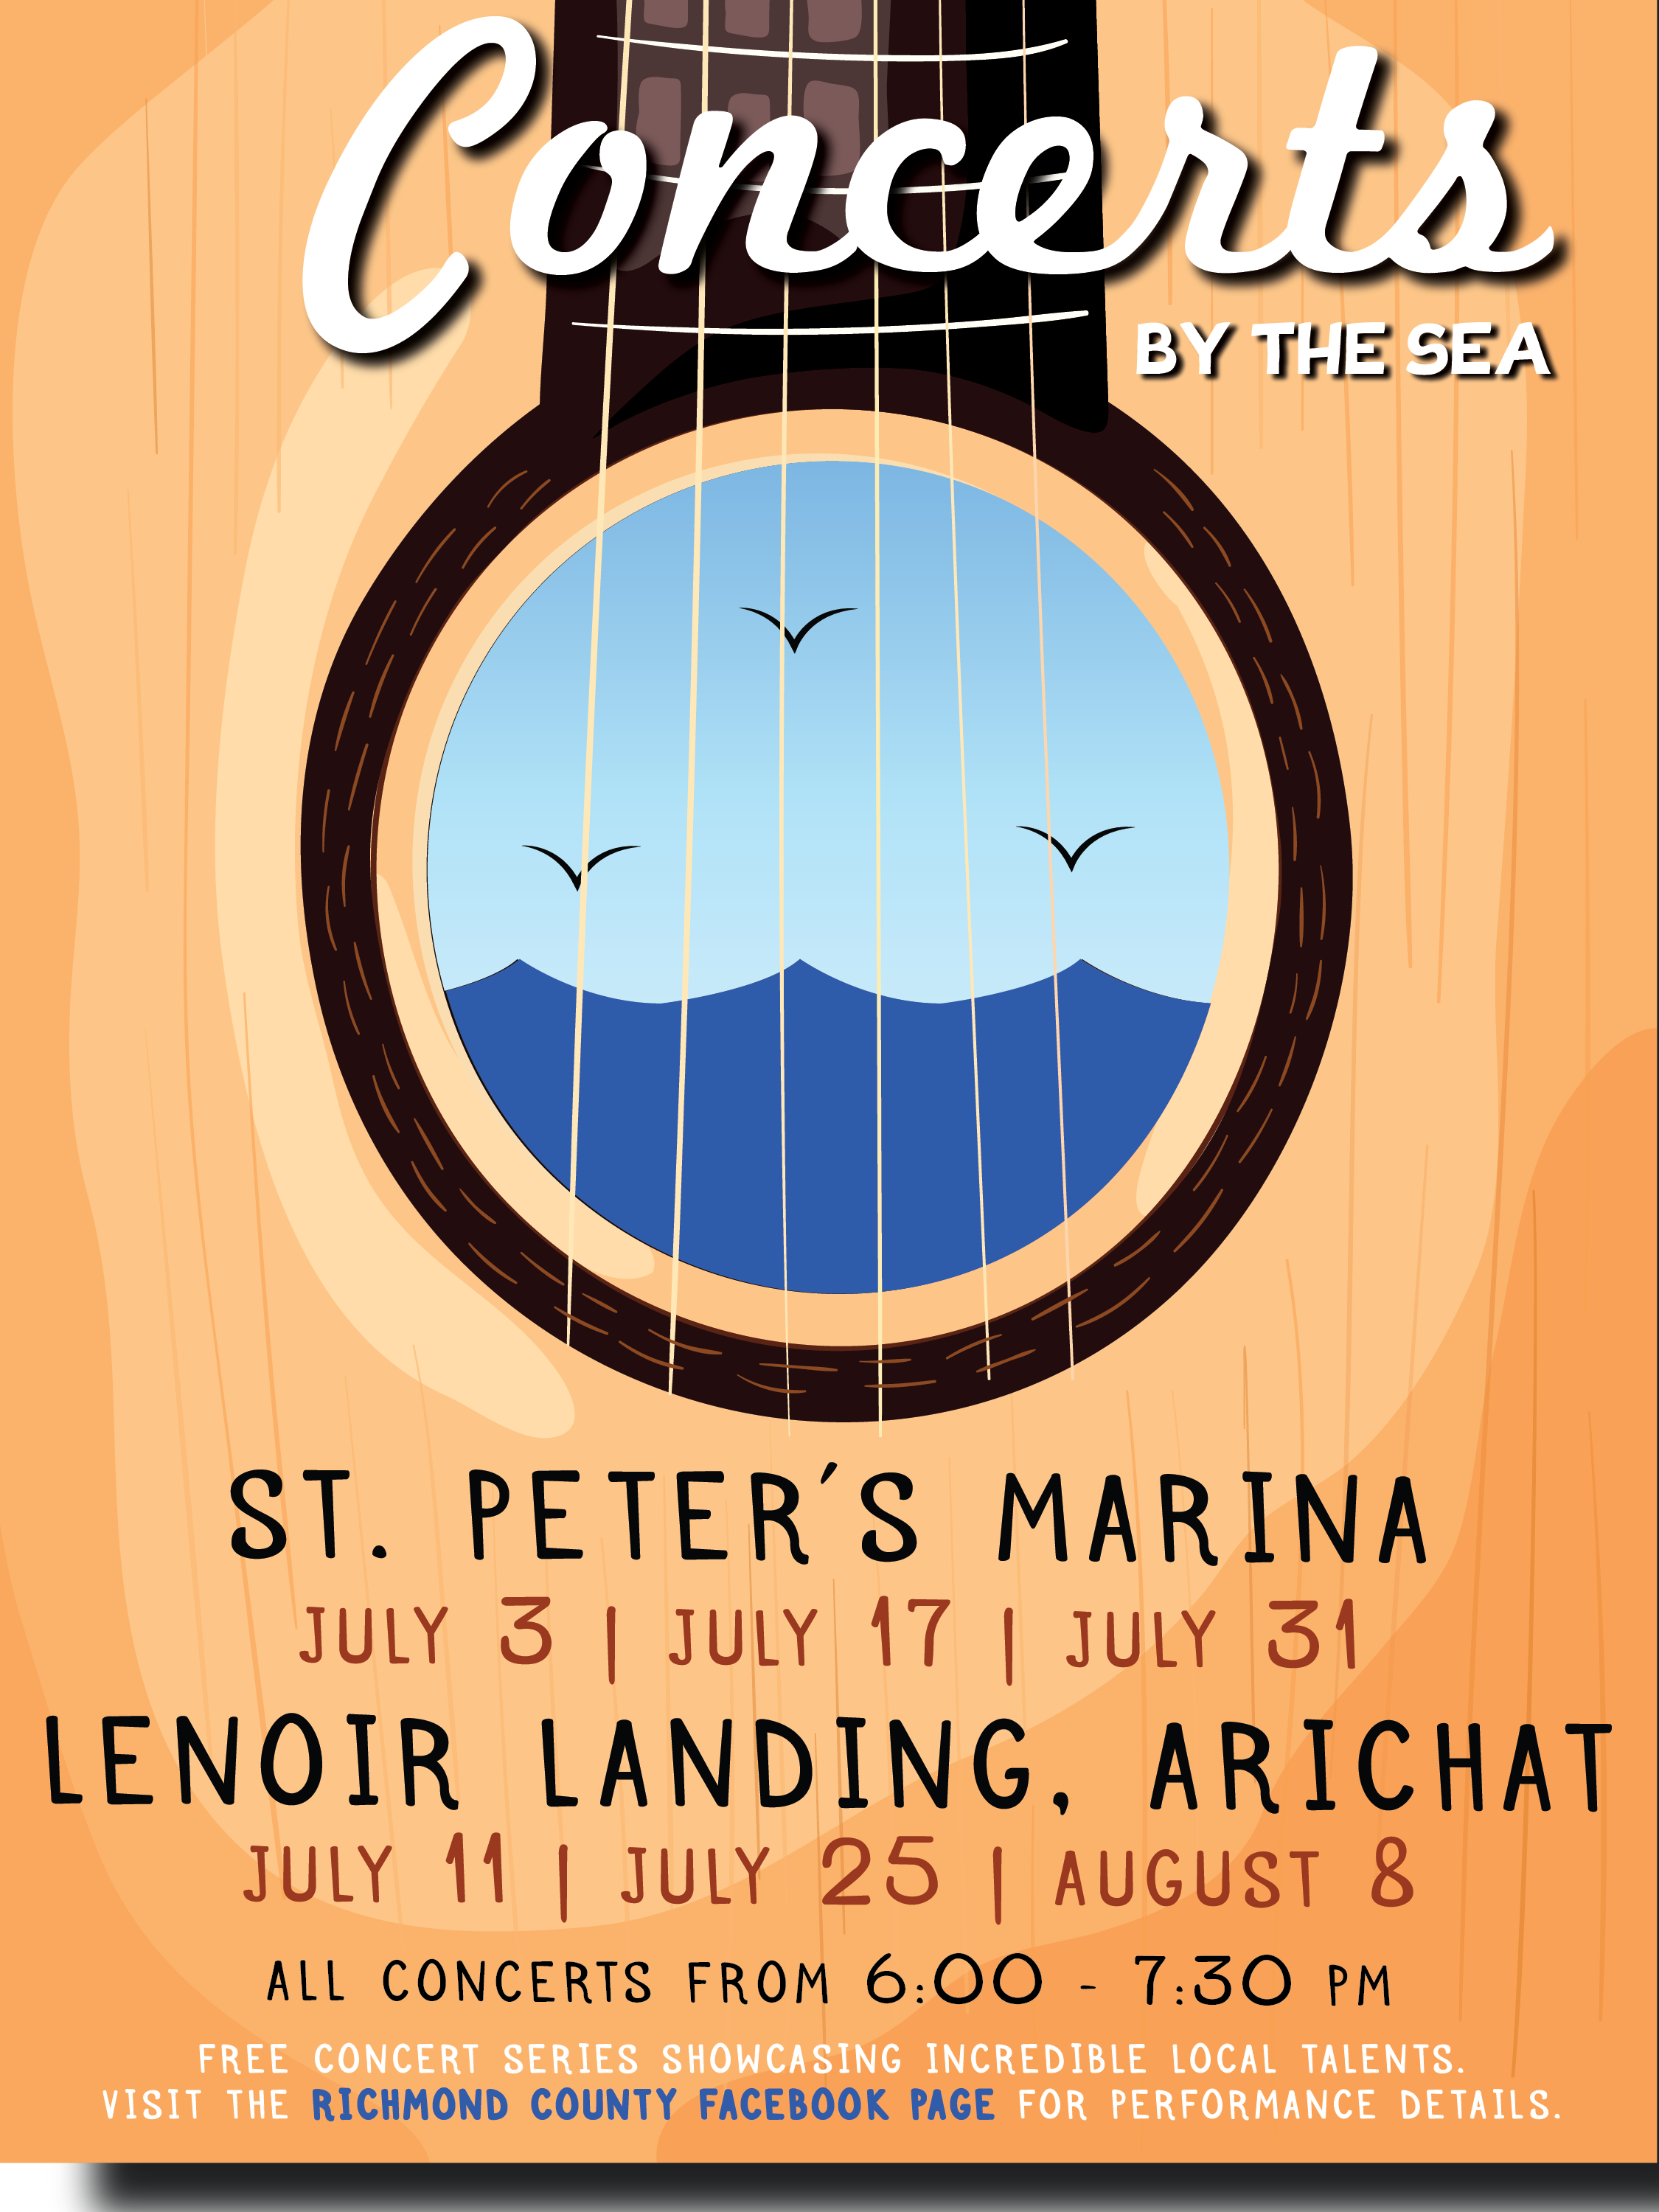 Concerts by the Sea3 01